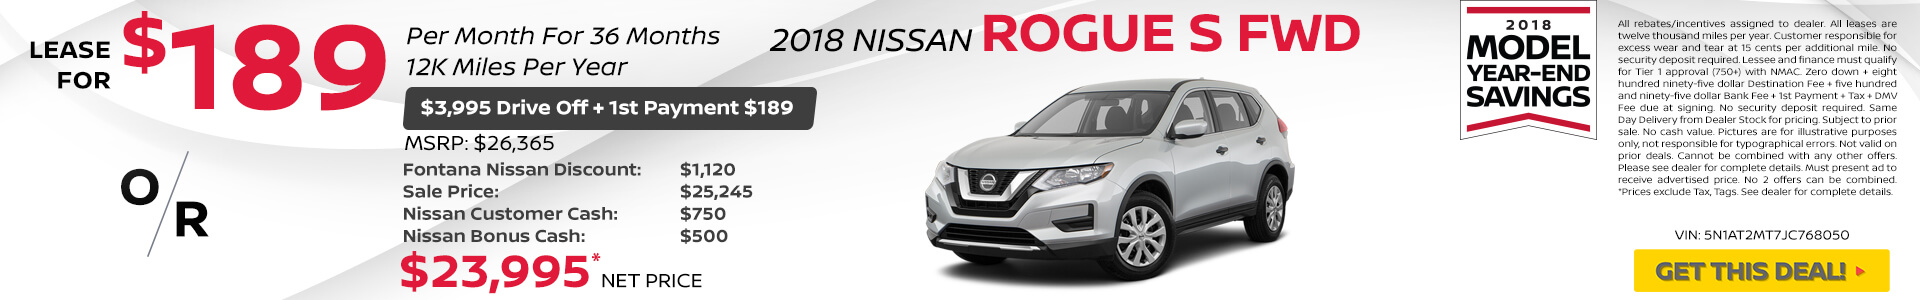 Nissan Rogue $149 Lease or $20,995 Purchase